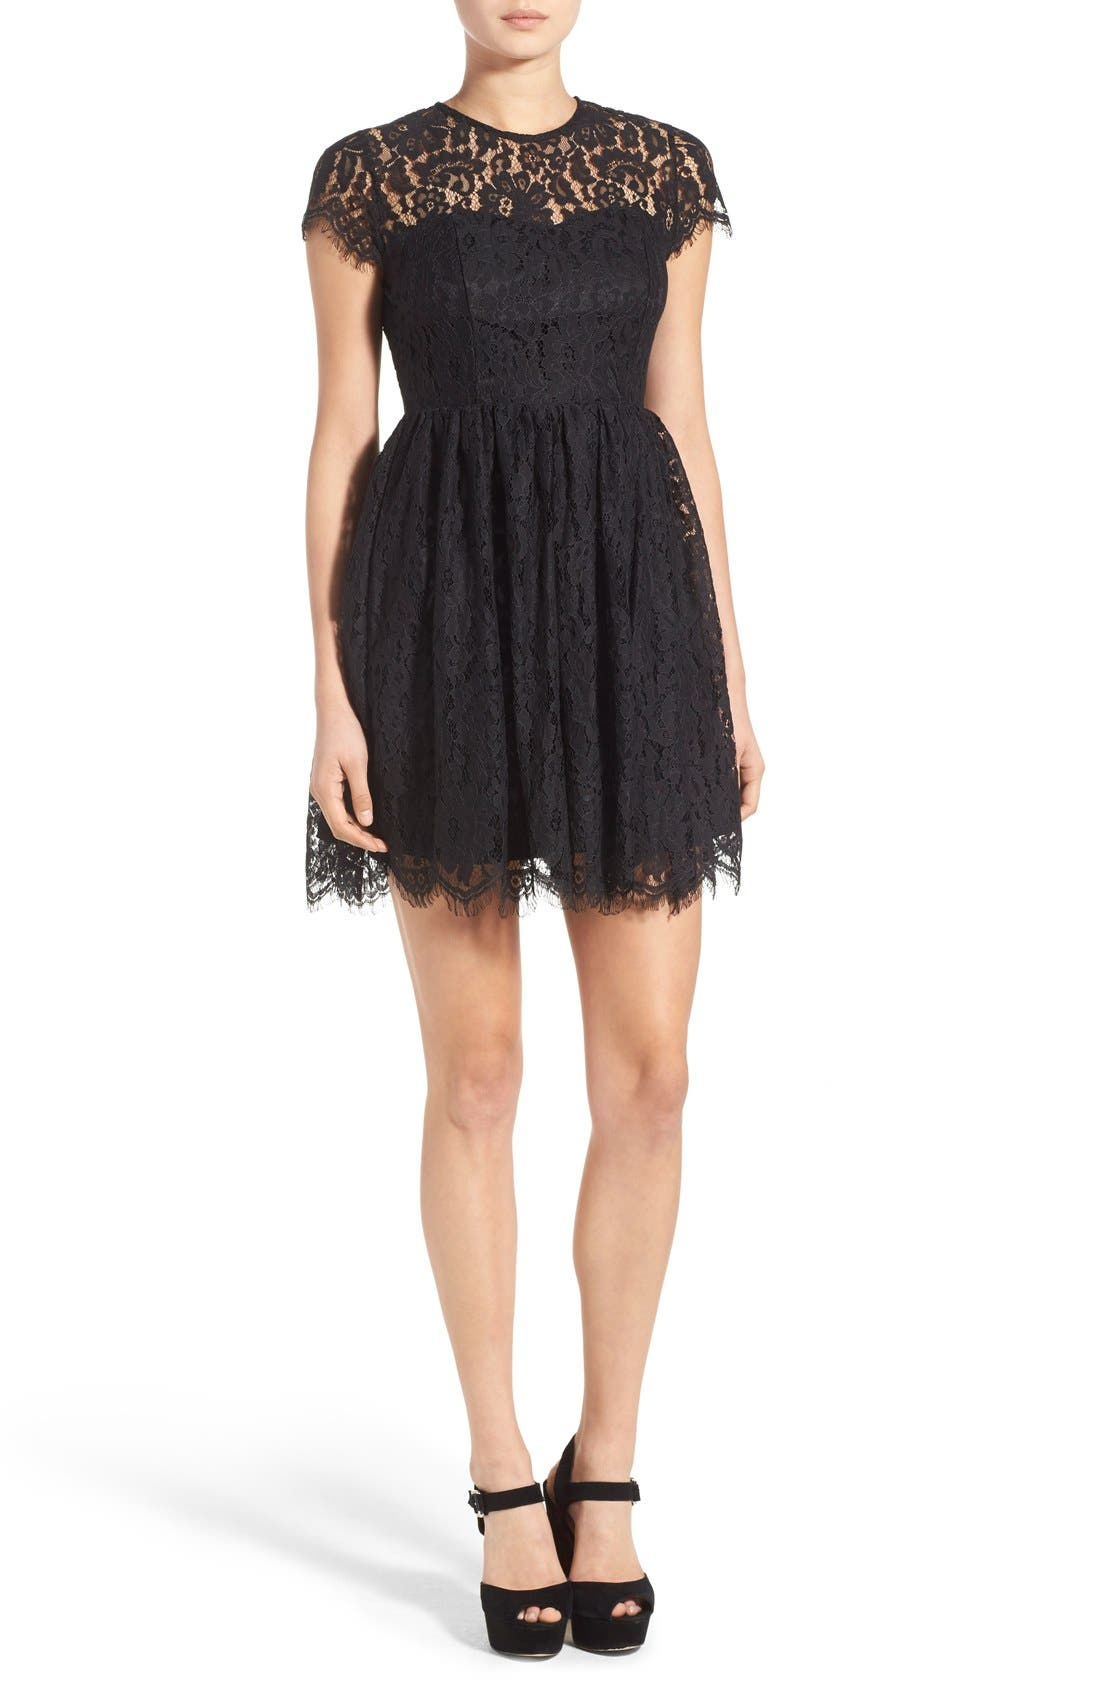 Alternate Image 1 Selected - Glamorous Lace Open Back Fit & Flare Dress